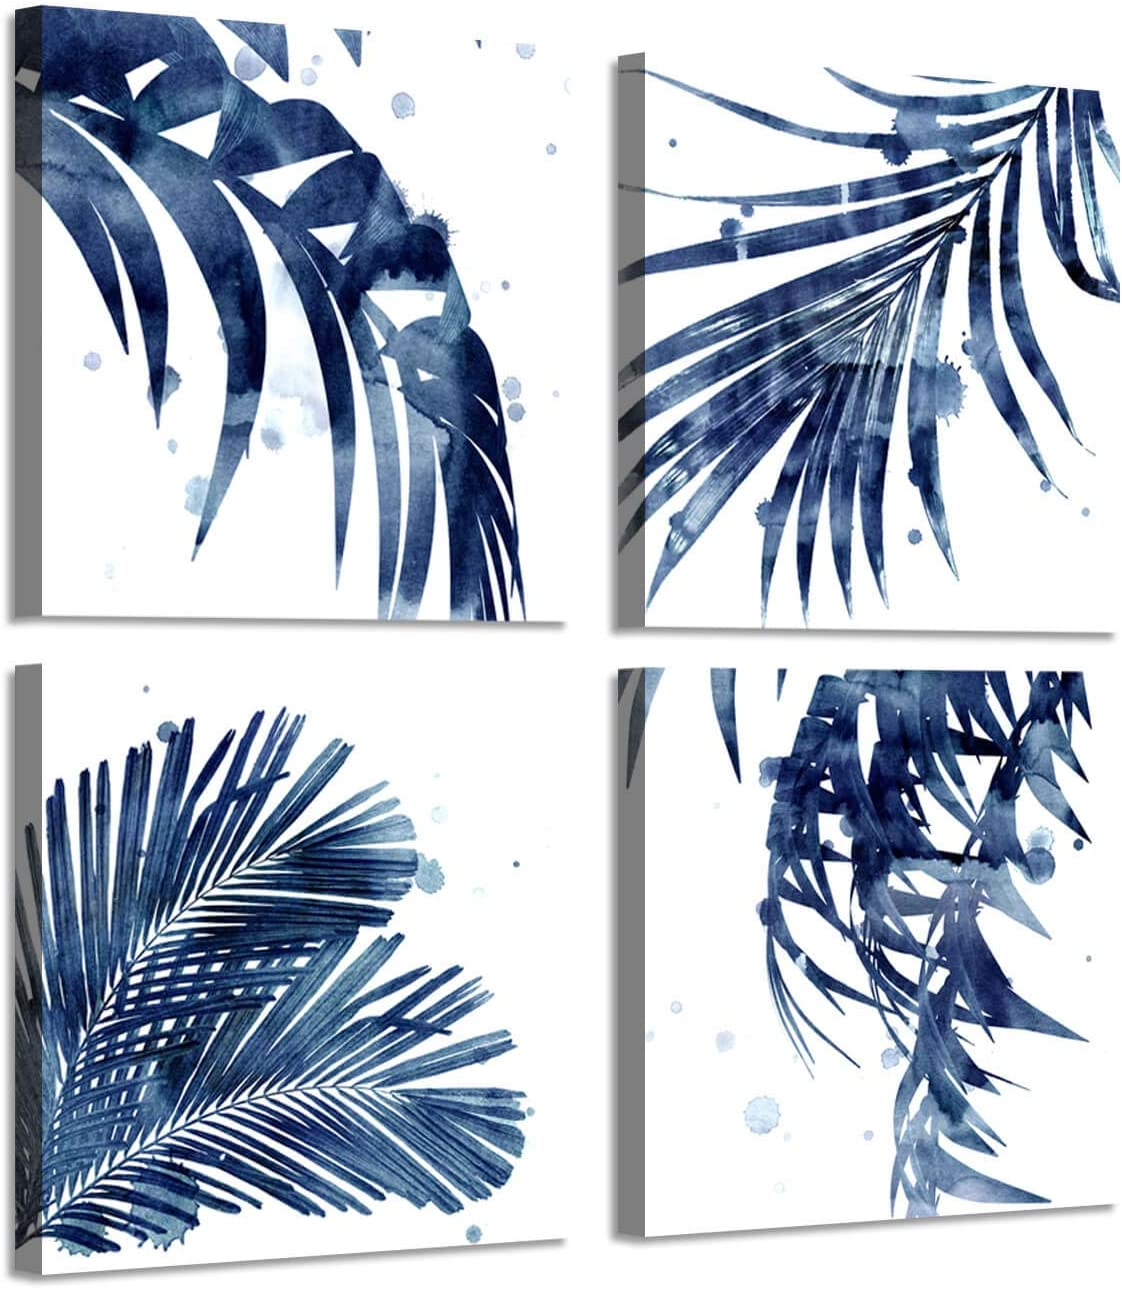 Amazon Com Natural Picture Leaf Artwork Paintings Palm Leaves Graphic Art Print On Canva Set For Wall Murals Posters Prints